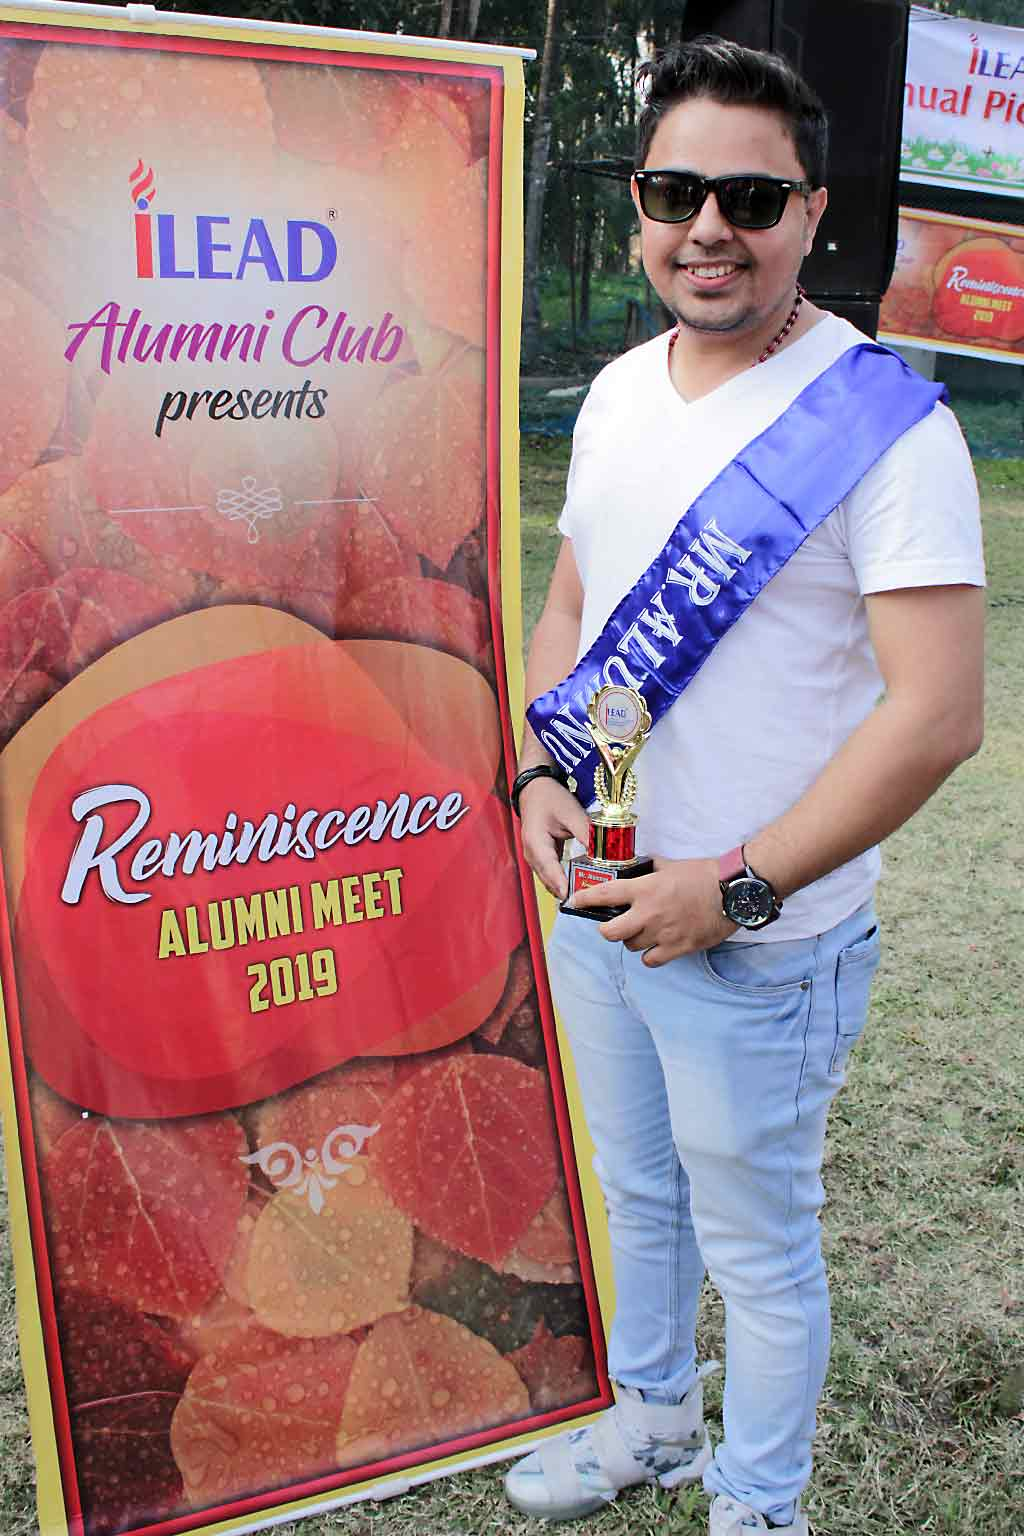 Mr. Alumni - Reminiscence Alumni Meet 2019